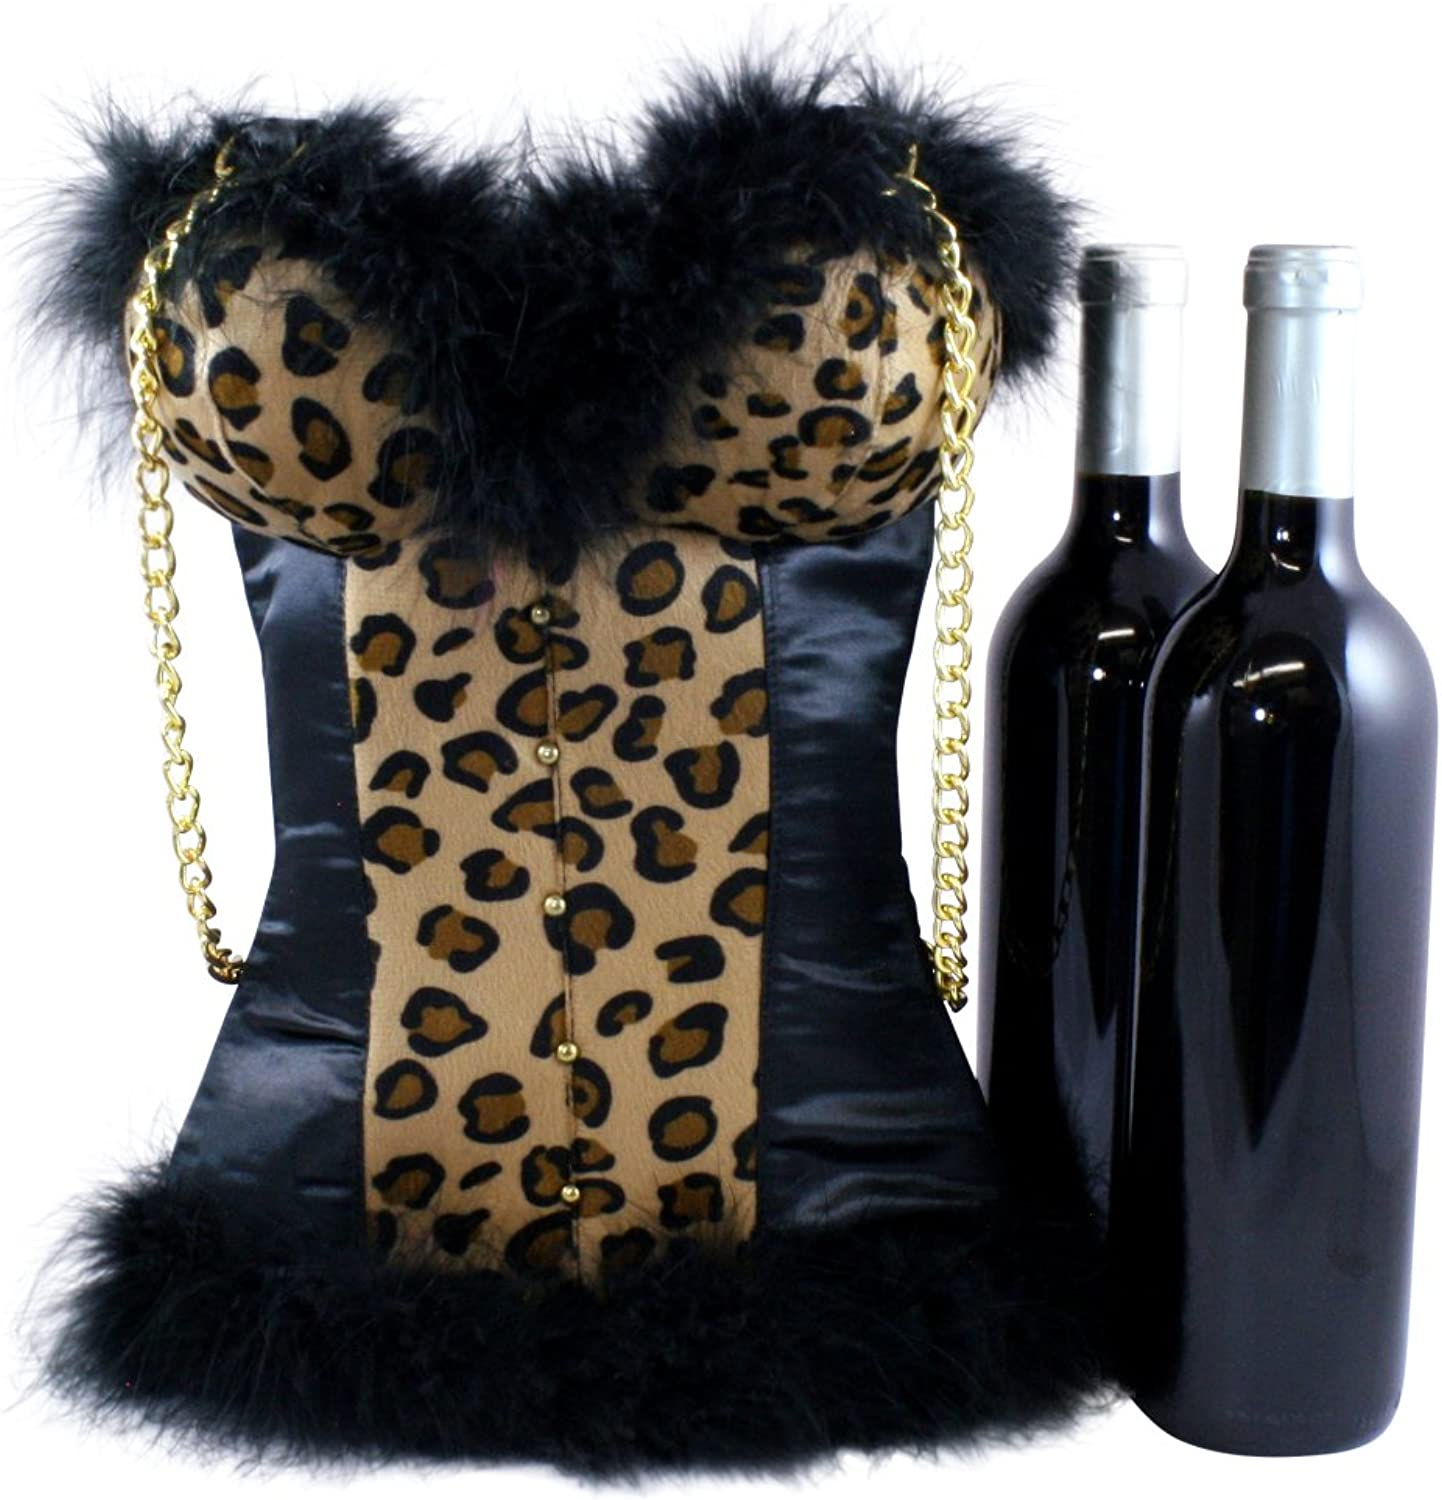 Insulated Wine Bag by Tipsy Totes   Sexy Wine Carrier Tote for Hostess Gifts, Housewarmings, Birthdays, BYOB   Portable Wine Cooler Corset Shaped Tote   Cute Wine Bottle Carrier (Leopard Cheetah)